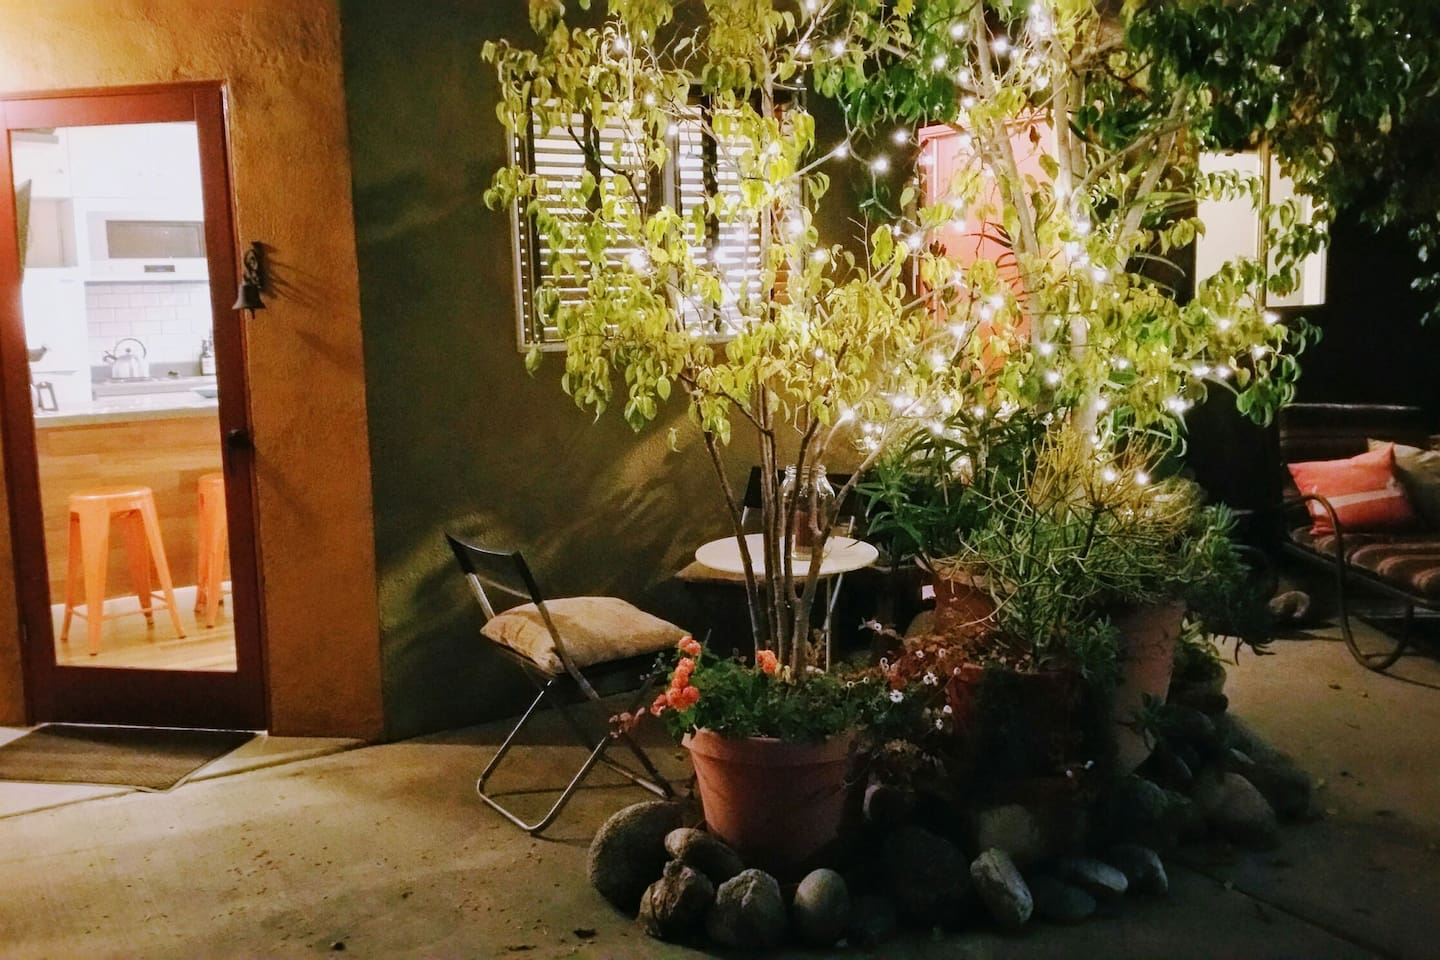 Your door and bistro table under the twinkle lights.